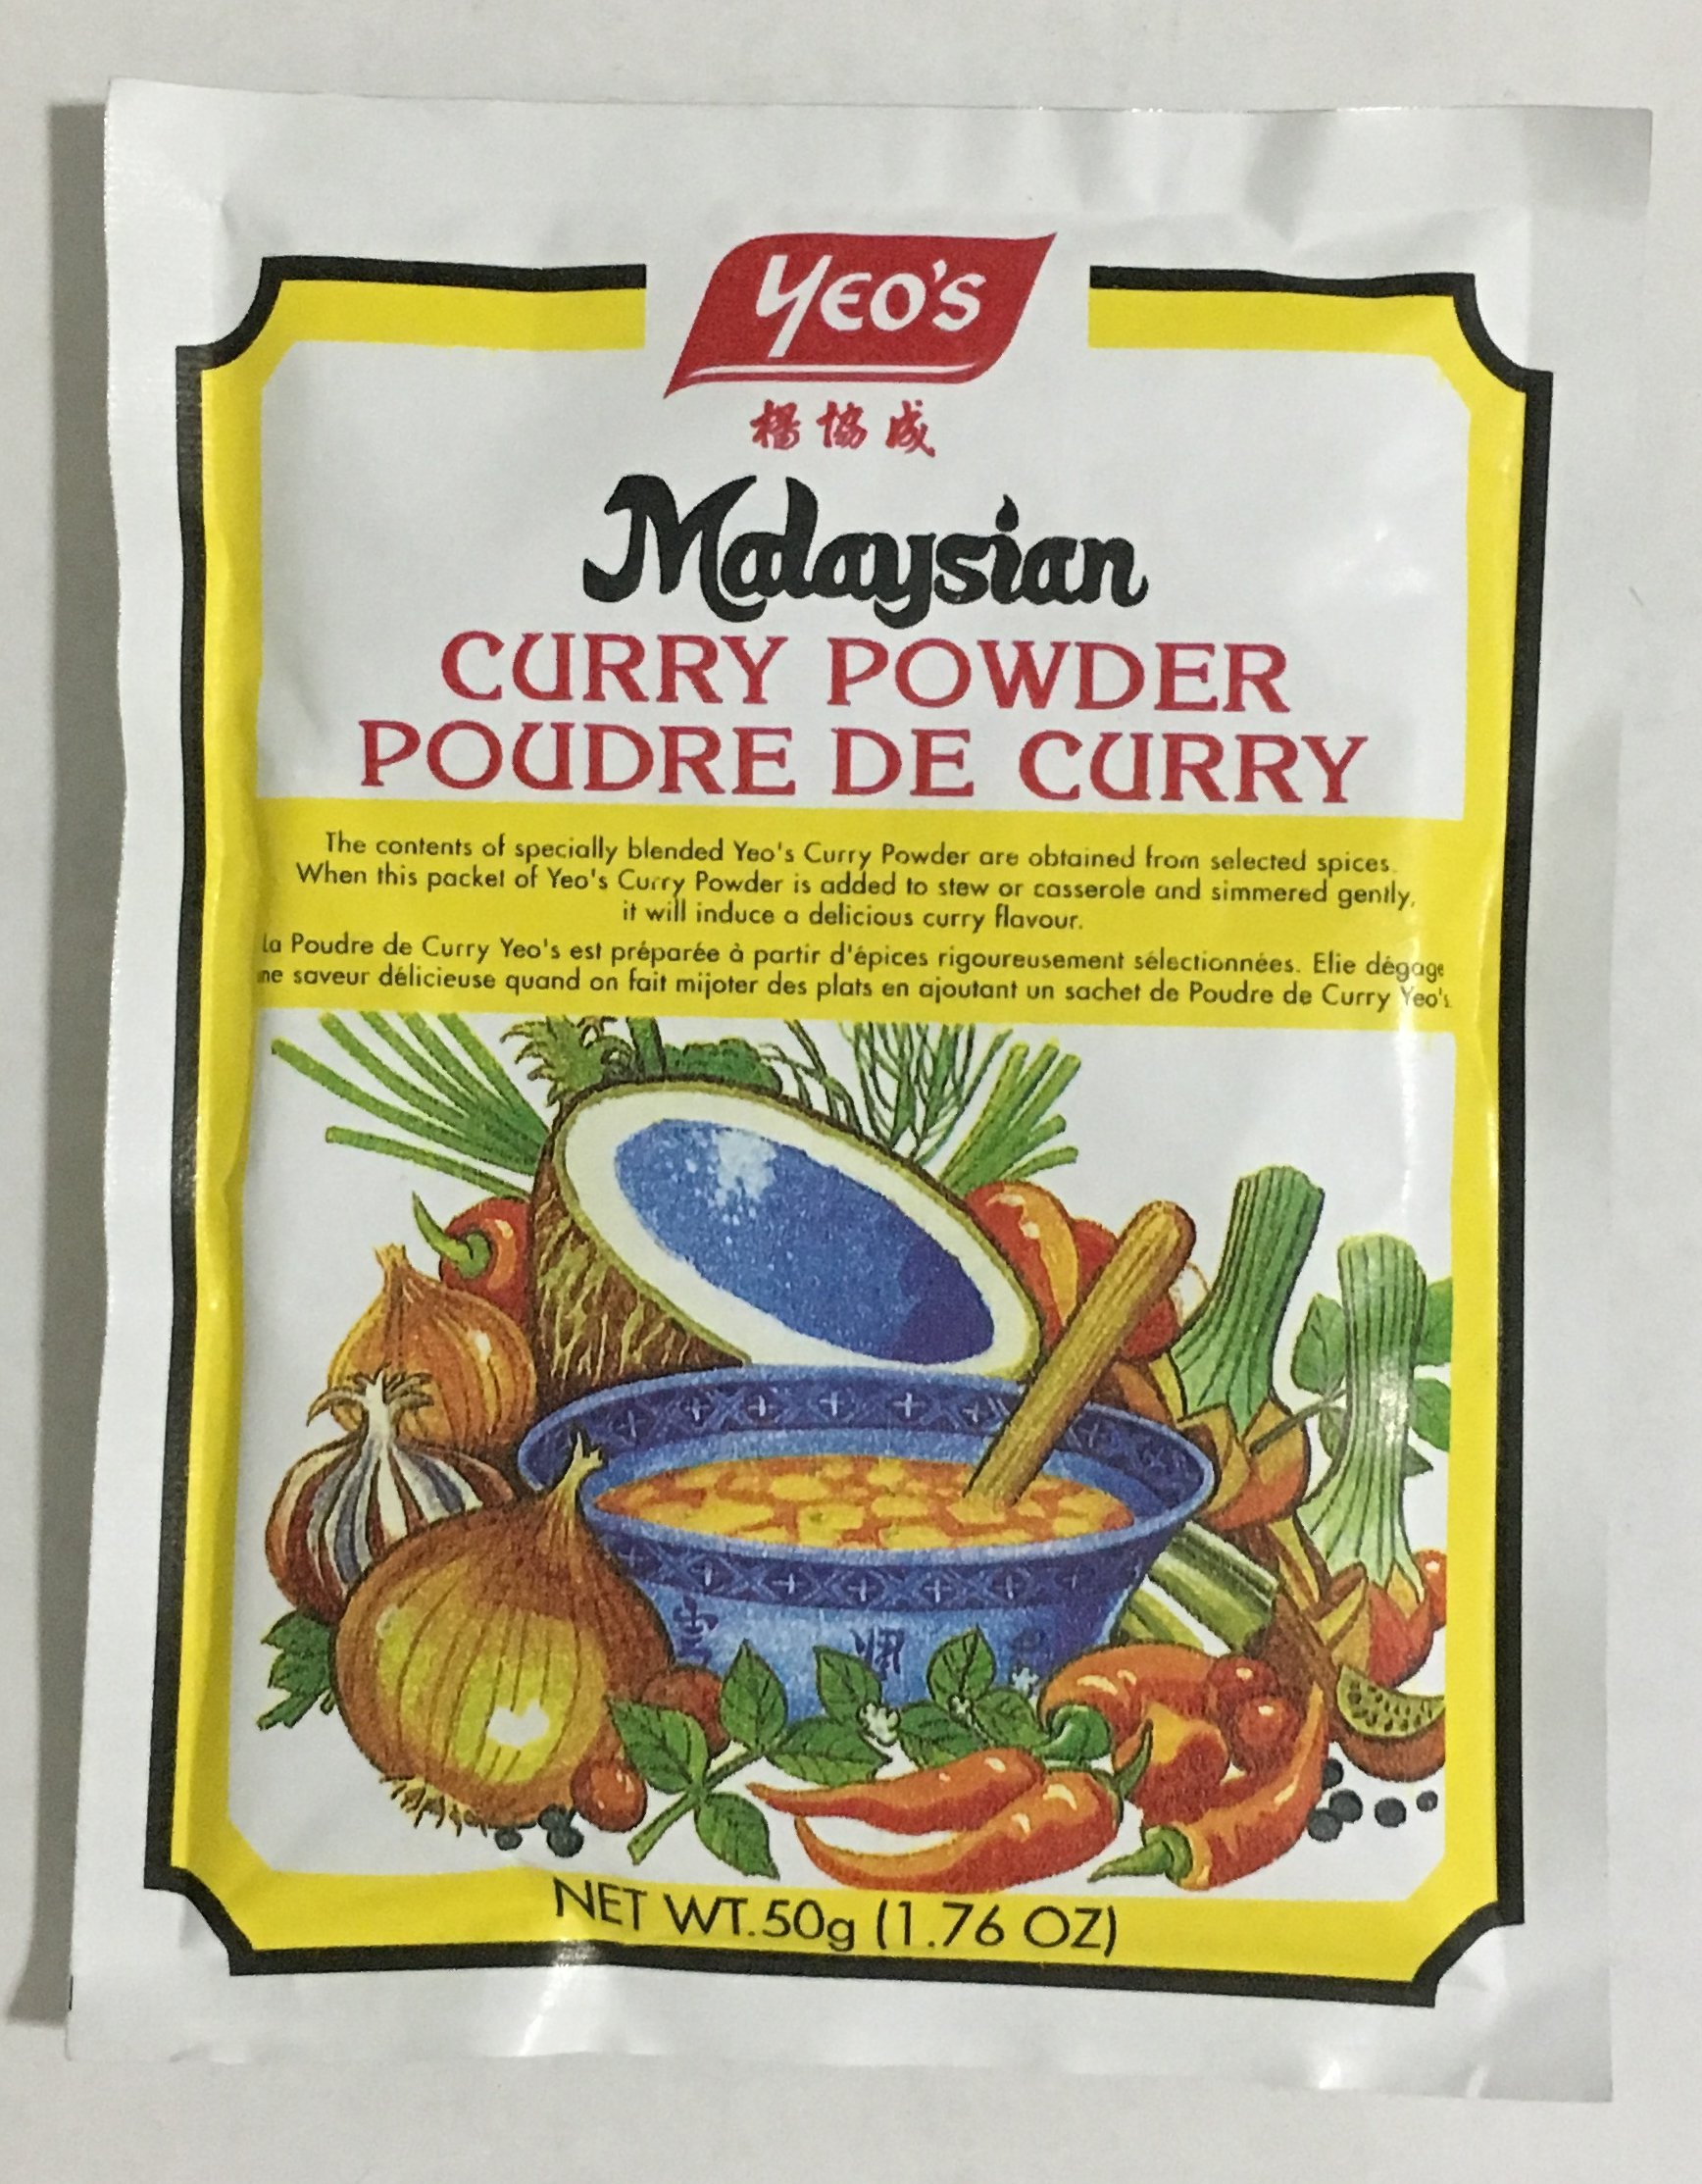 Yeo Malaysian Curry Powder (Poudre De Curry) - 1.76oz (3 packs) by Yeo